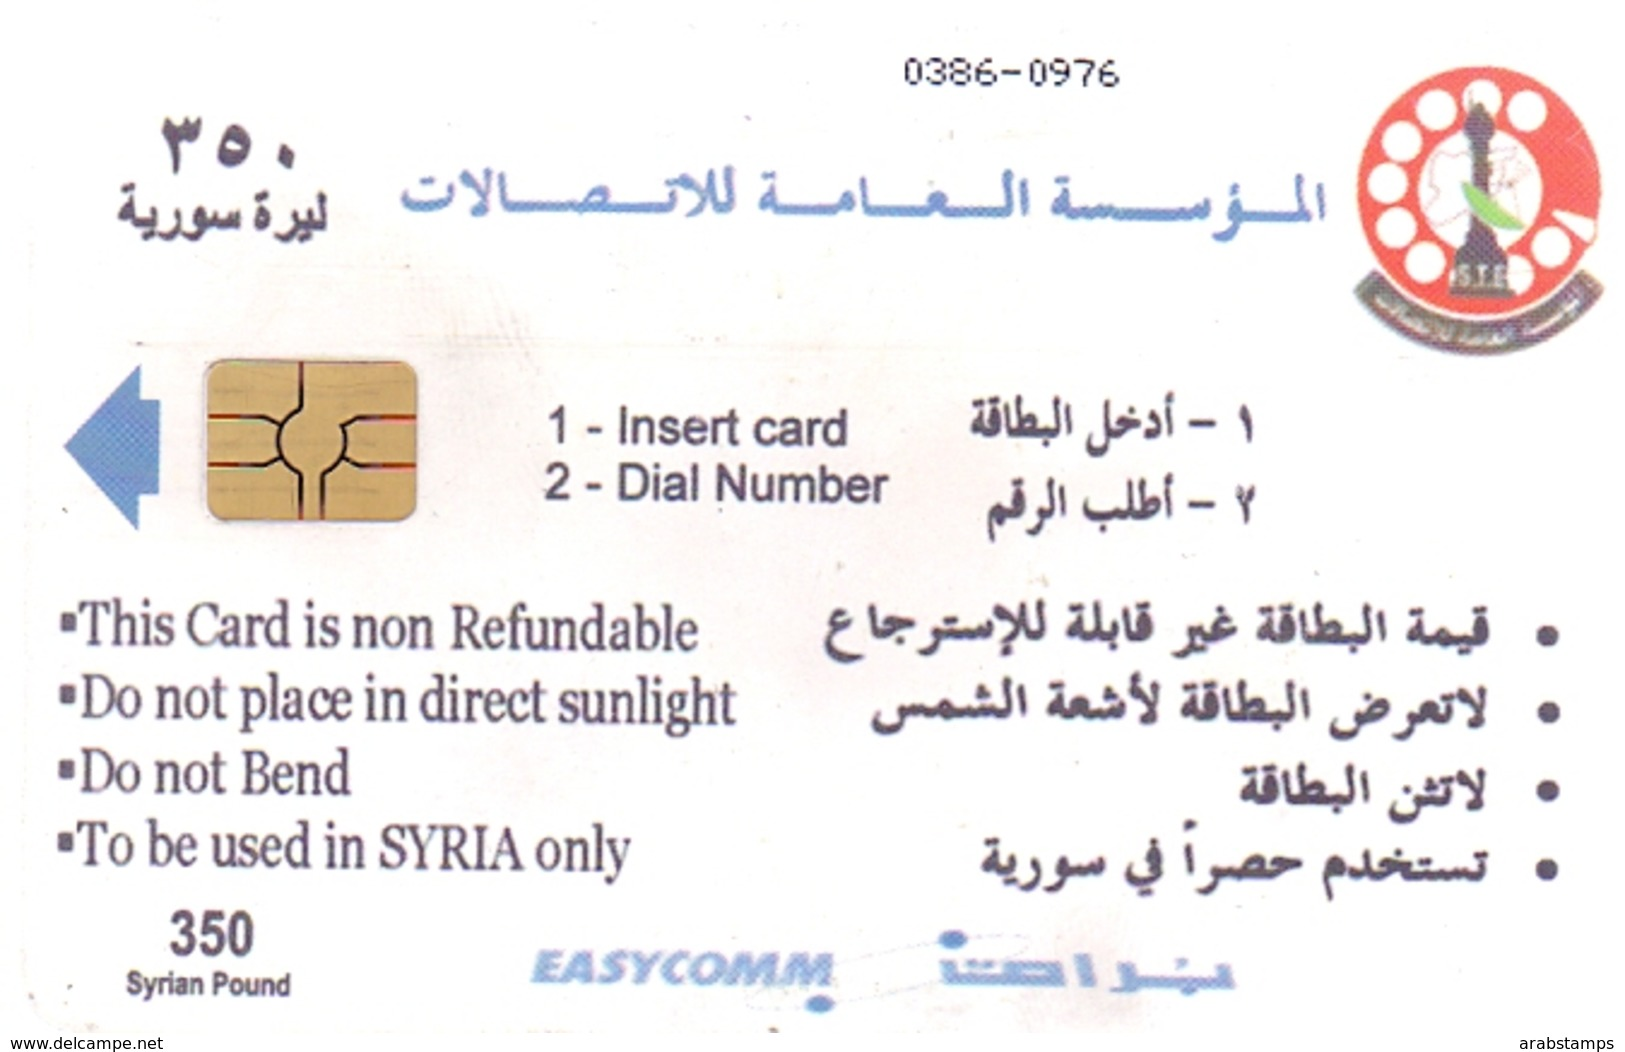 Syria Phonecards Used The Value 350 Syrian Pound - Syria